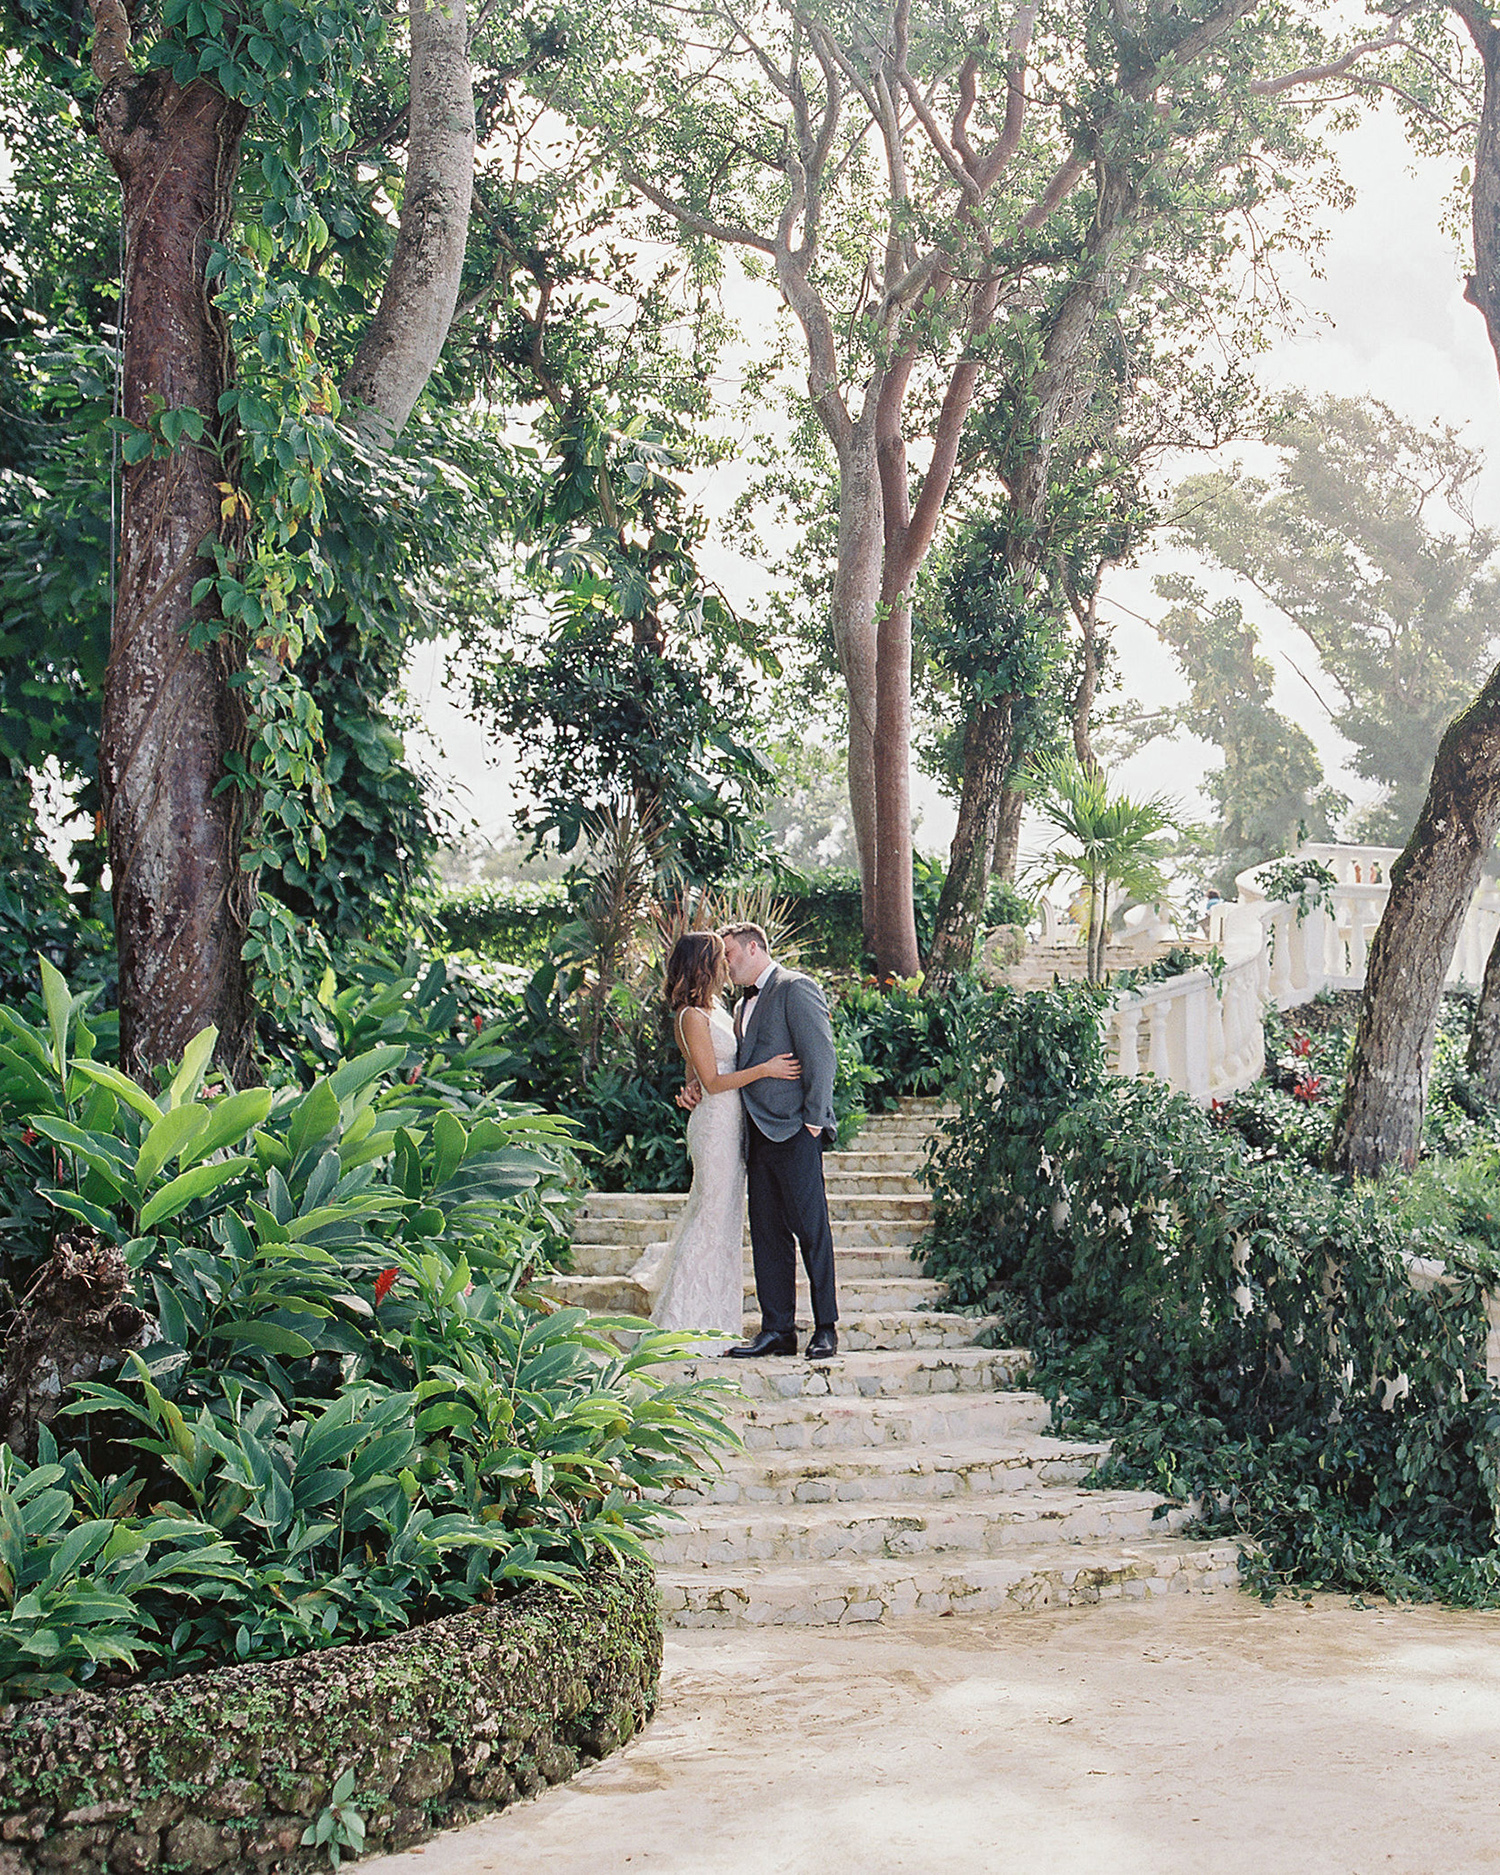 jessica ryan wedding couple kissing on stairway in lush garden